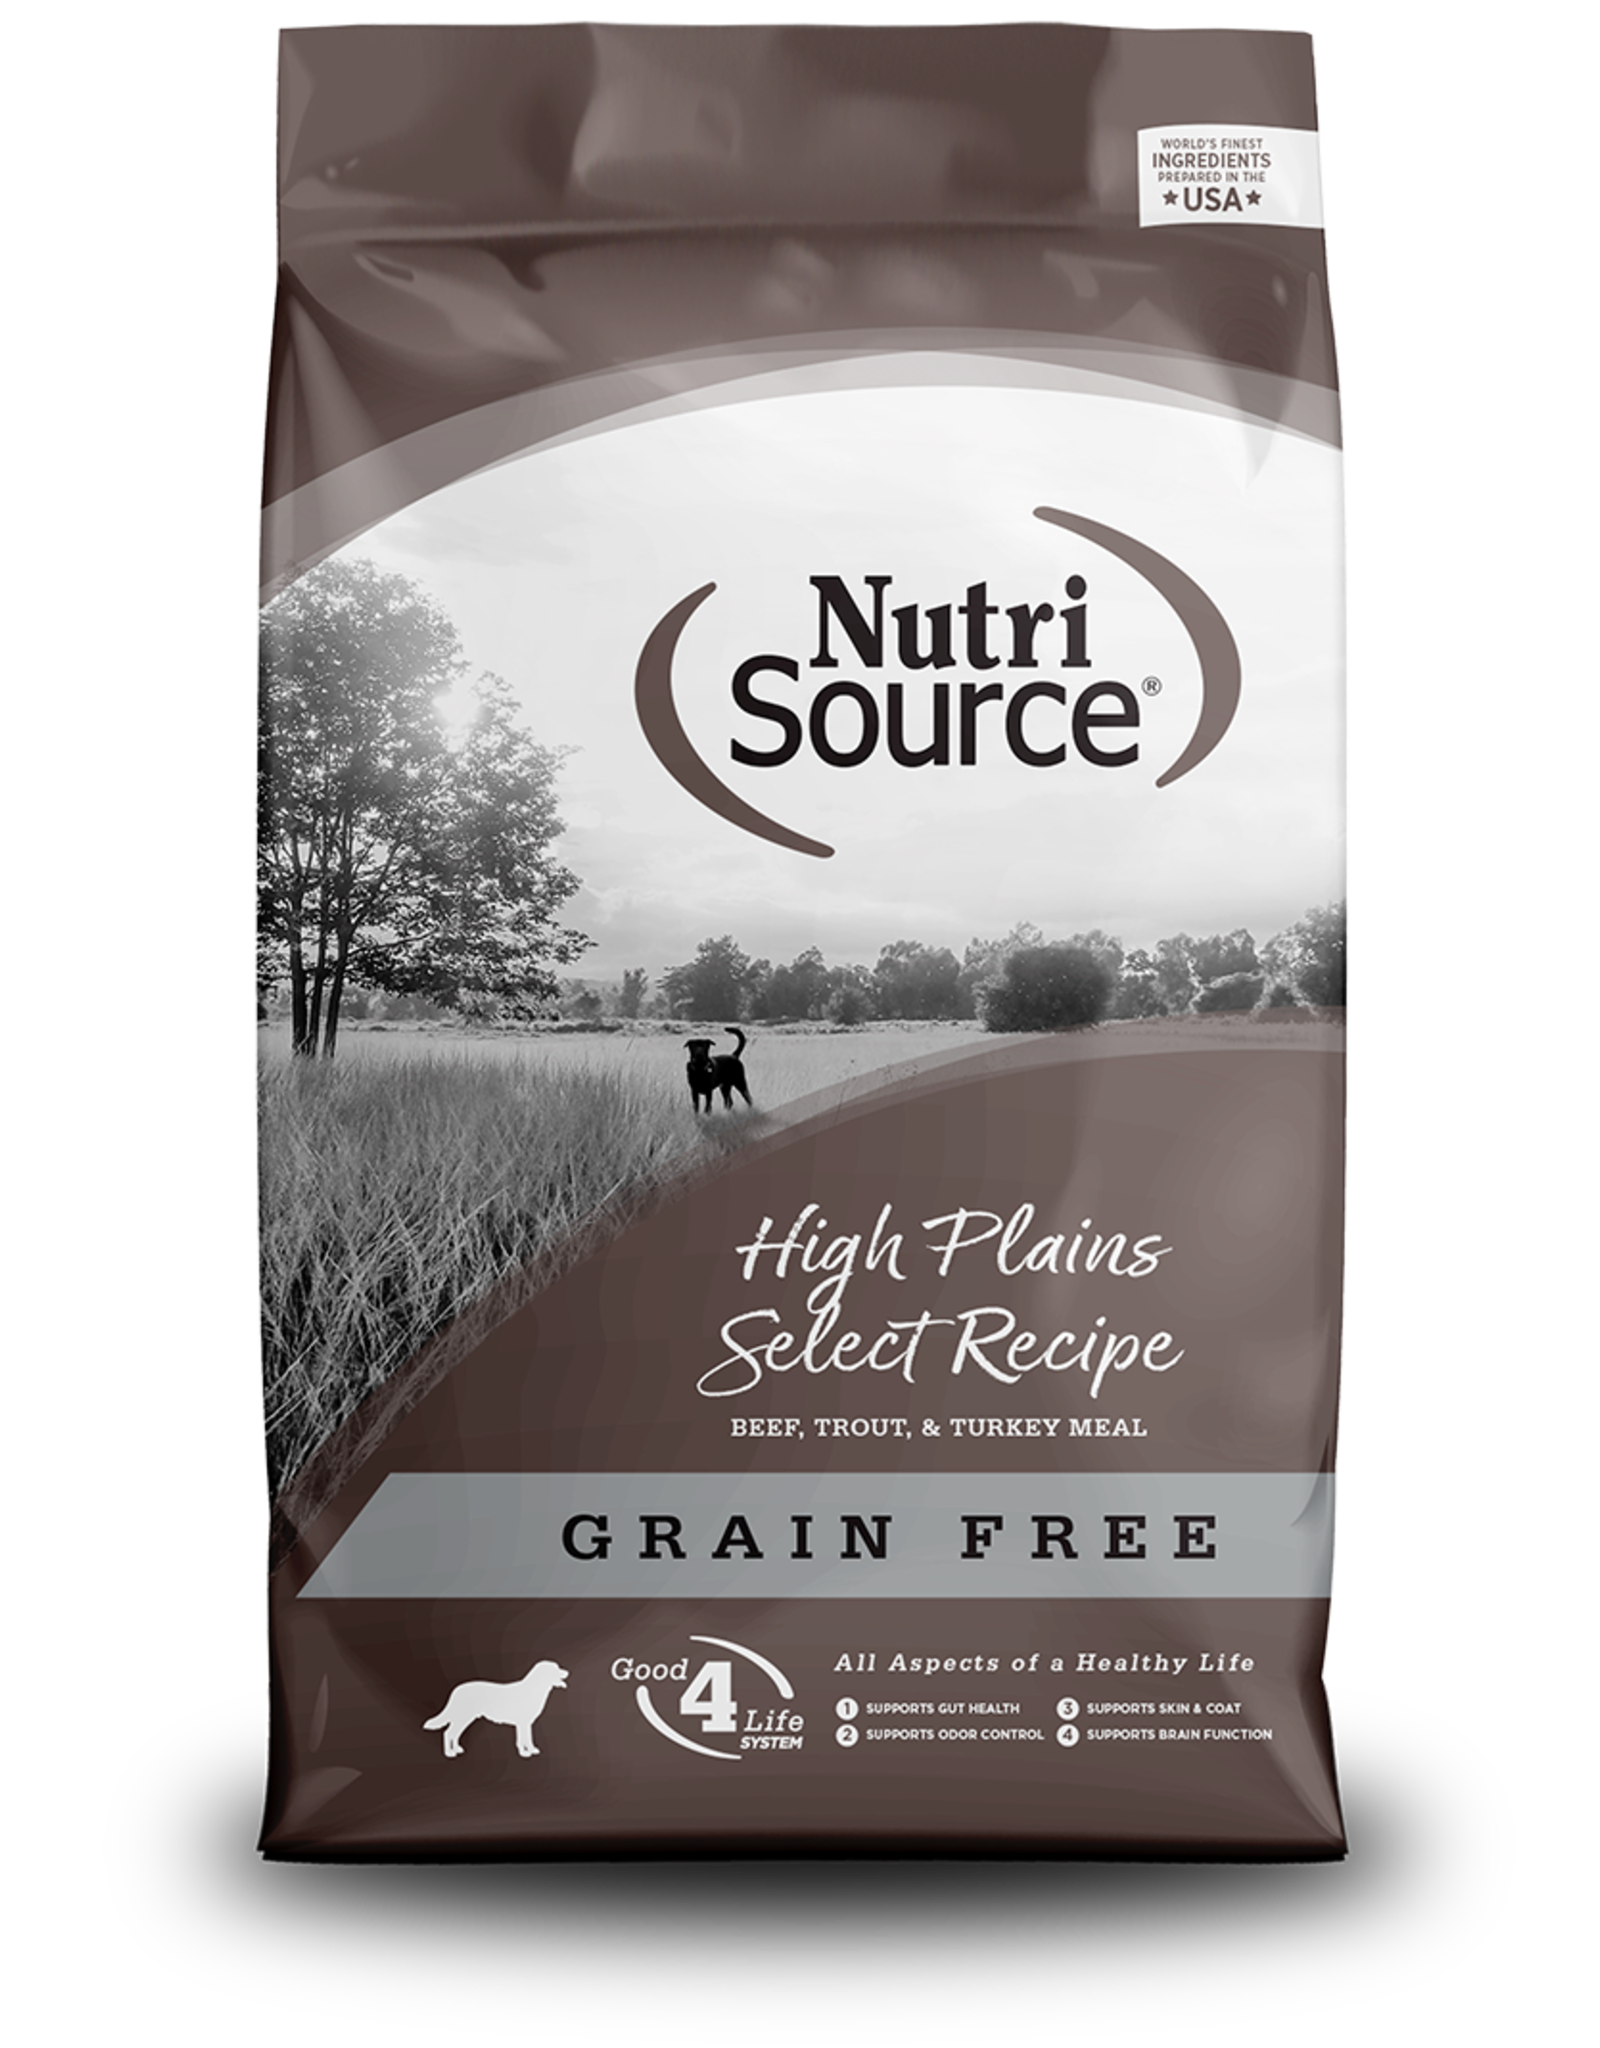 NutriSource NutriSource Dry Dog Food High Plains Select Recipe Beef, Trout, & Turkey Meal Grain Free